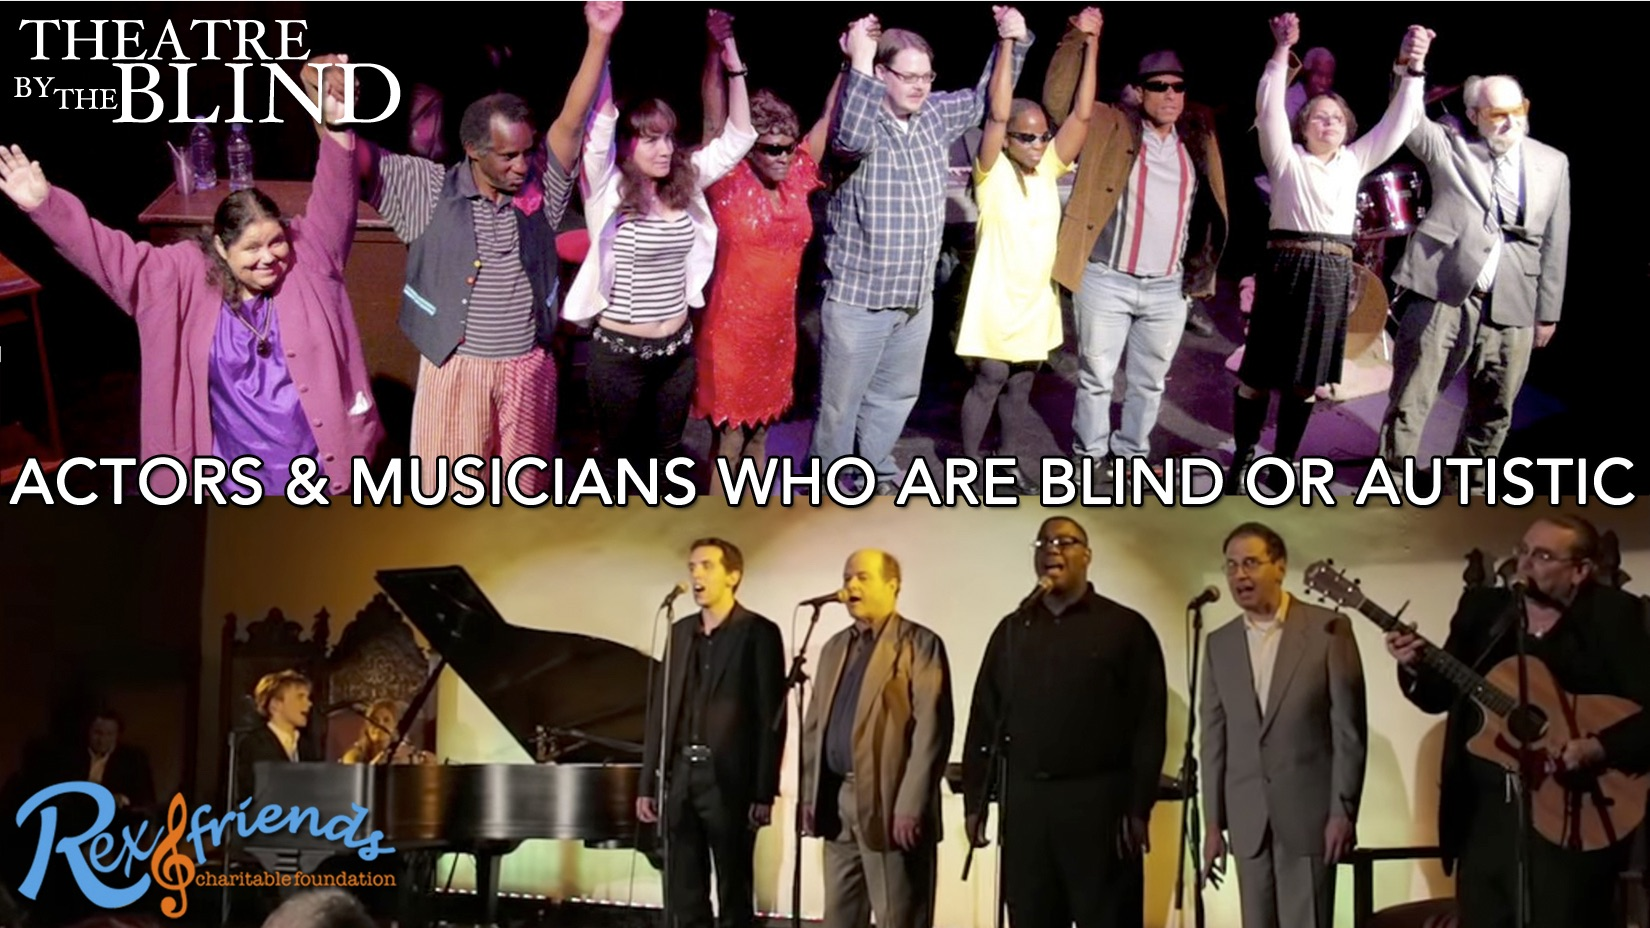 actors-musicians-blind-flyer